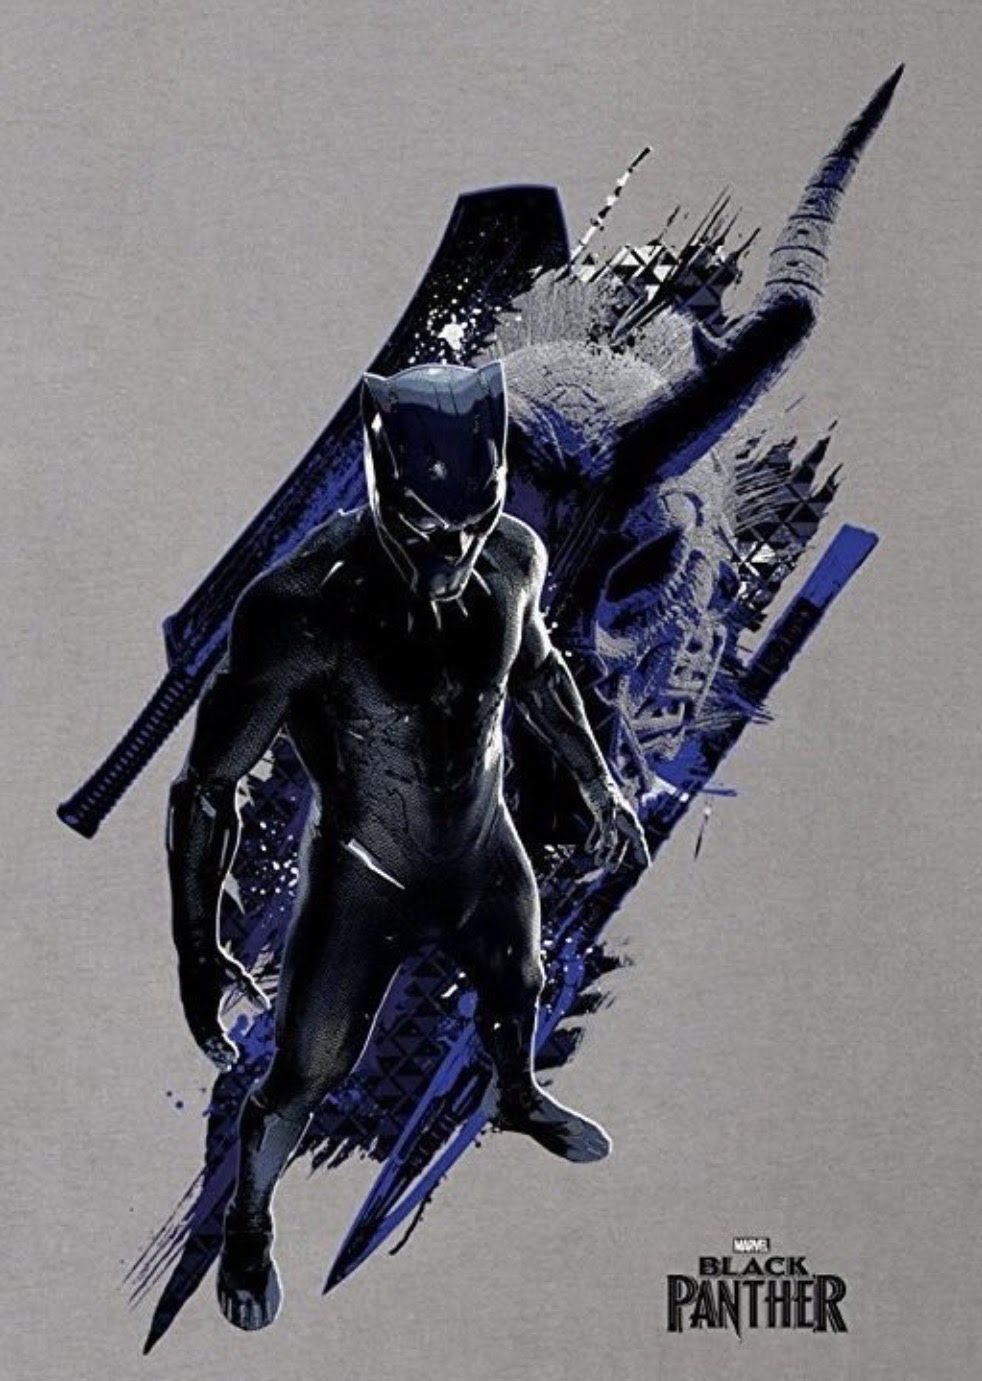 Contact Support Black Panther Marvel Black Panther Movie Poster Black Panther